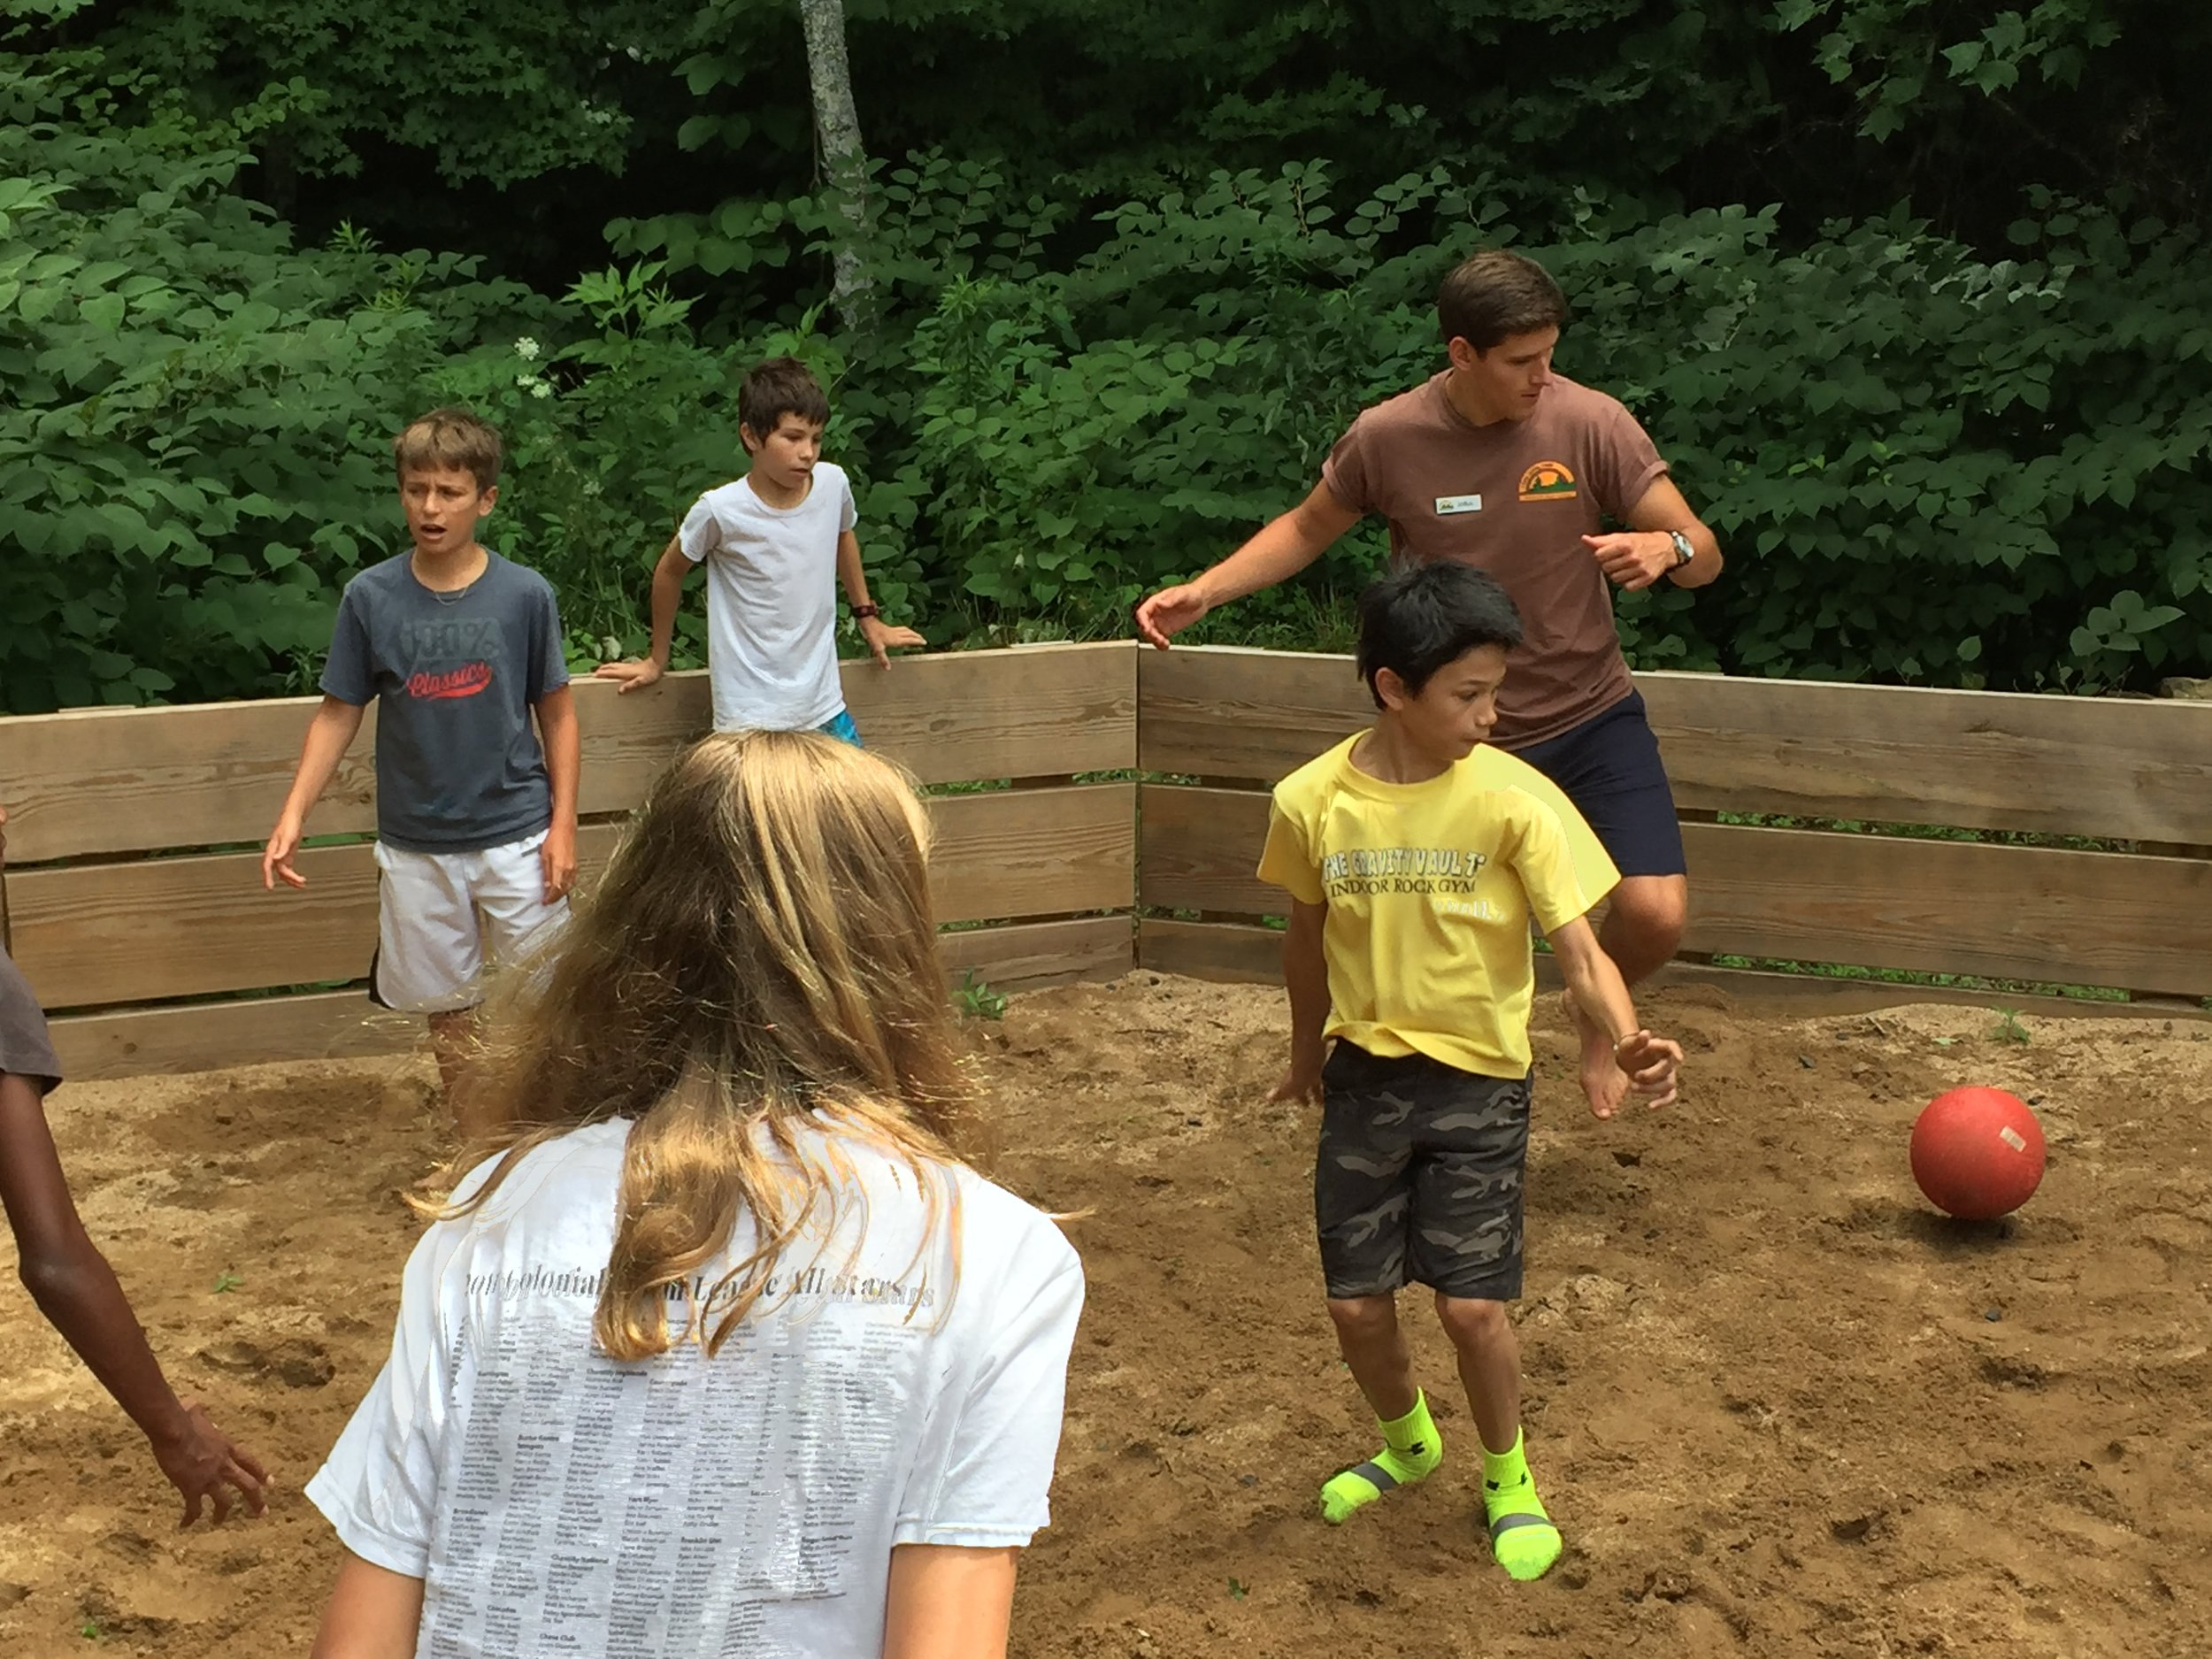 Camp Summer : A good round of gaga ball is always a hit.